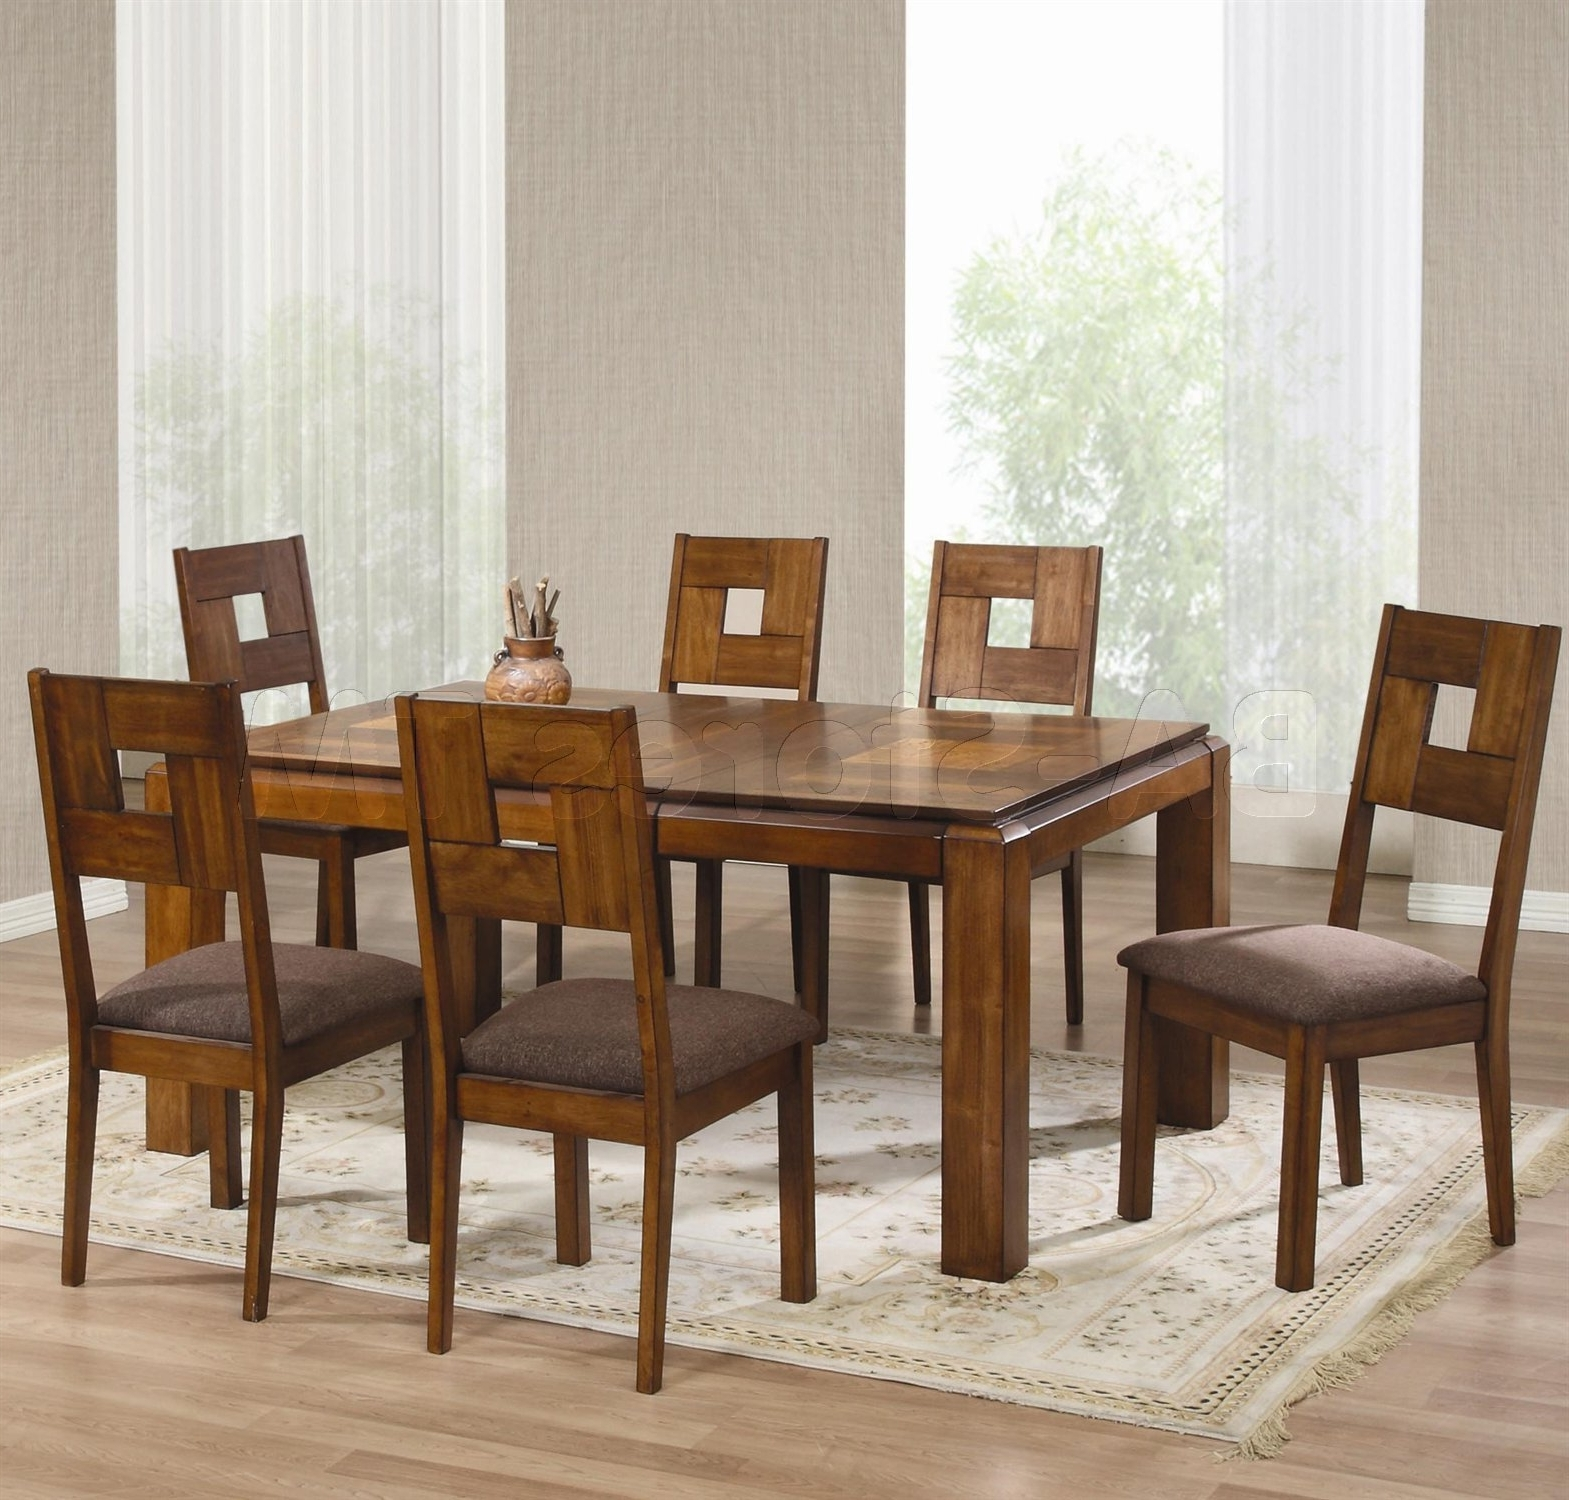 Dining Tables And Chairs for Most Recent Dining Room Black Dining Room Table Chairs Wood Dining Room